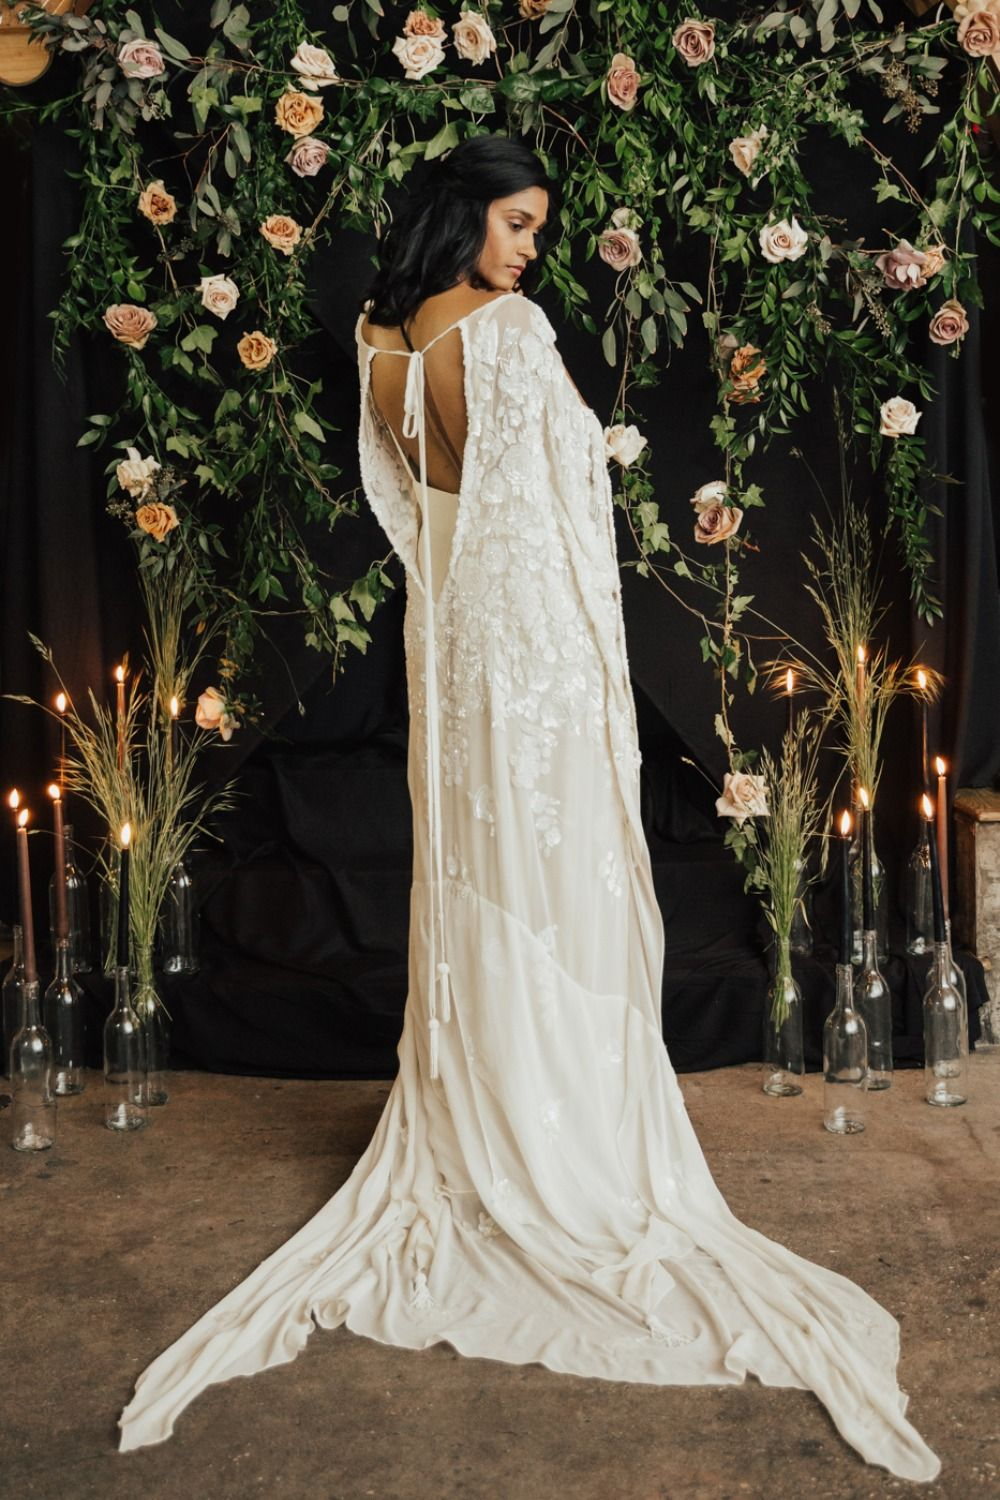 Effortlessly glamorous vintage nyc wedding ideas wedding dresses